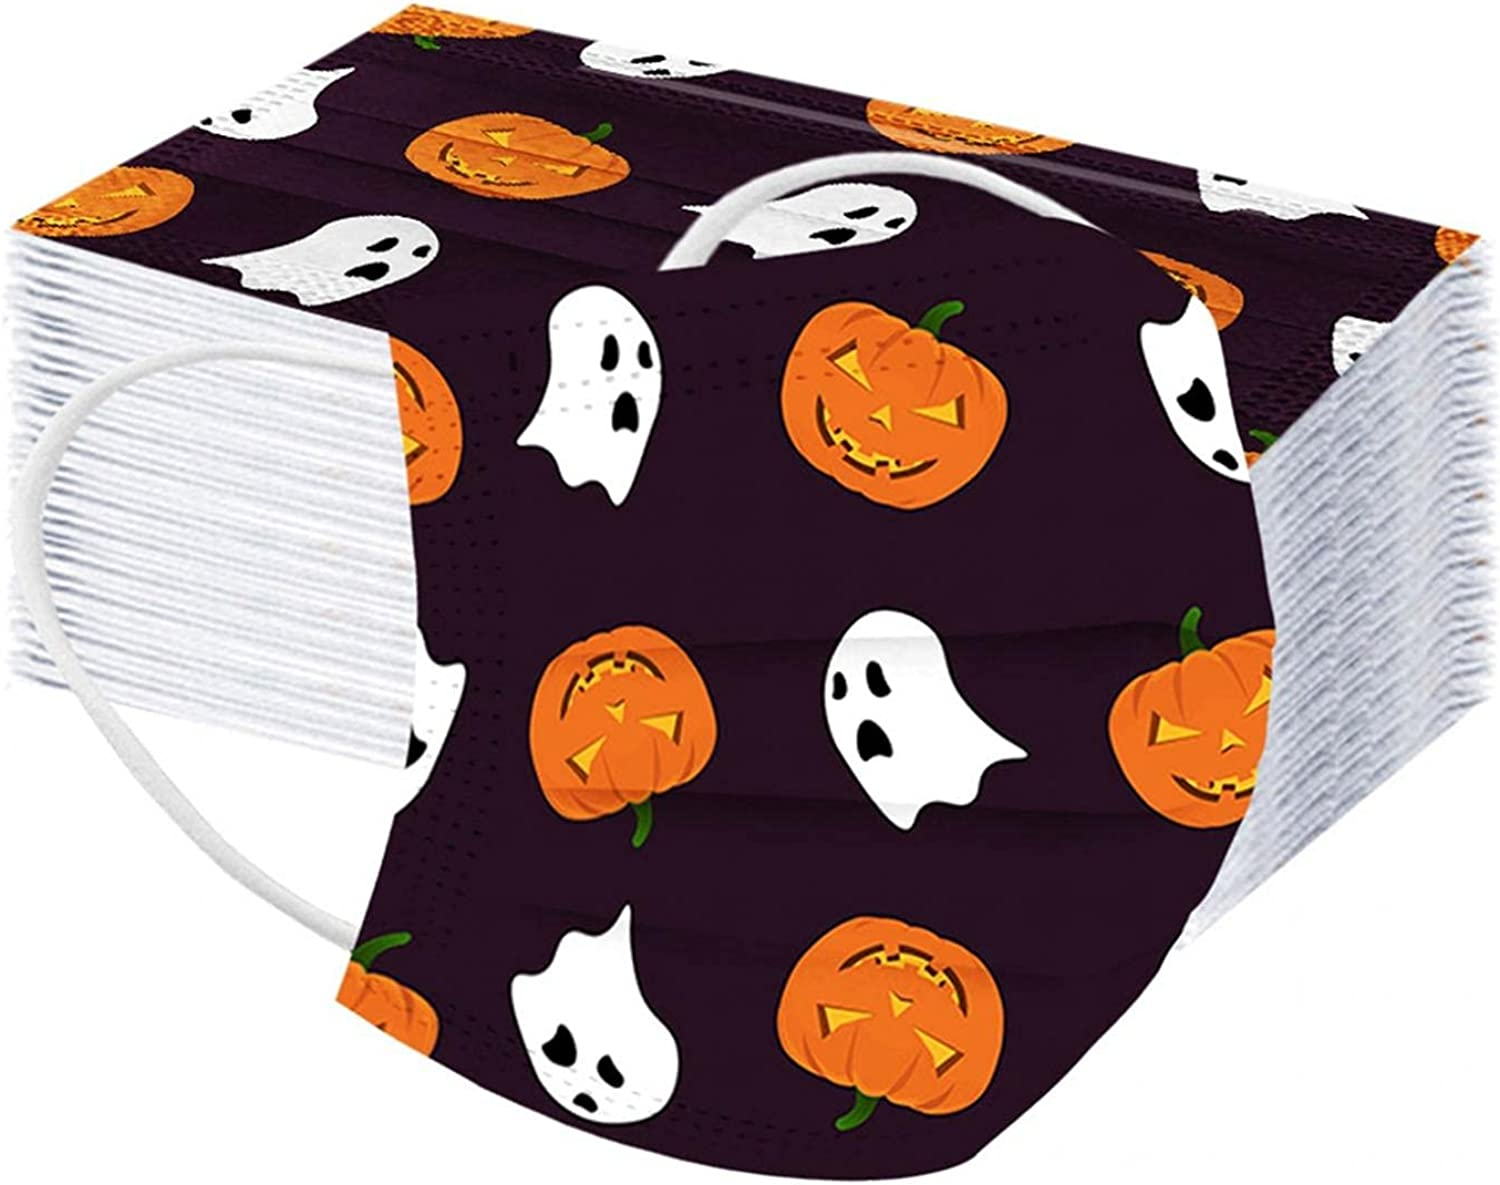 50PC Halloween Pumpkin Patterned Bat for Max 75% OFF Face_Masks Boston Mall Dispo Adult